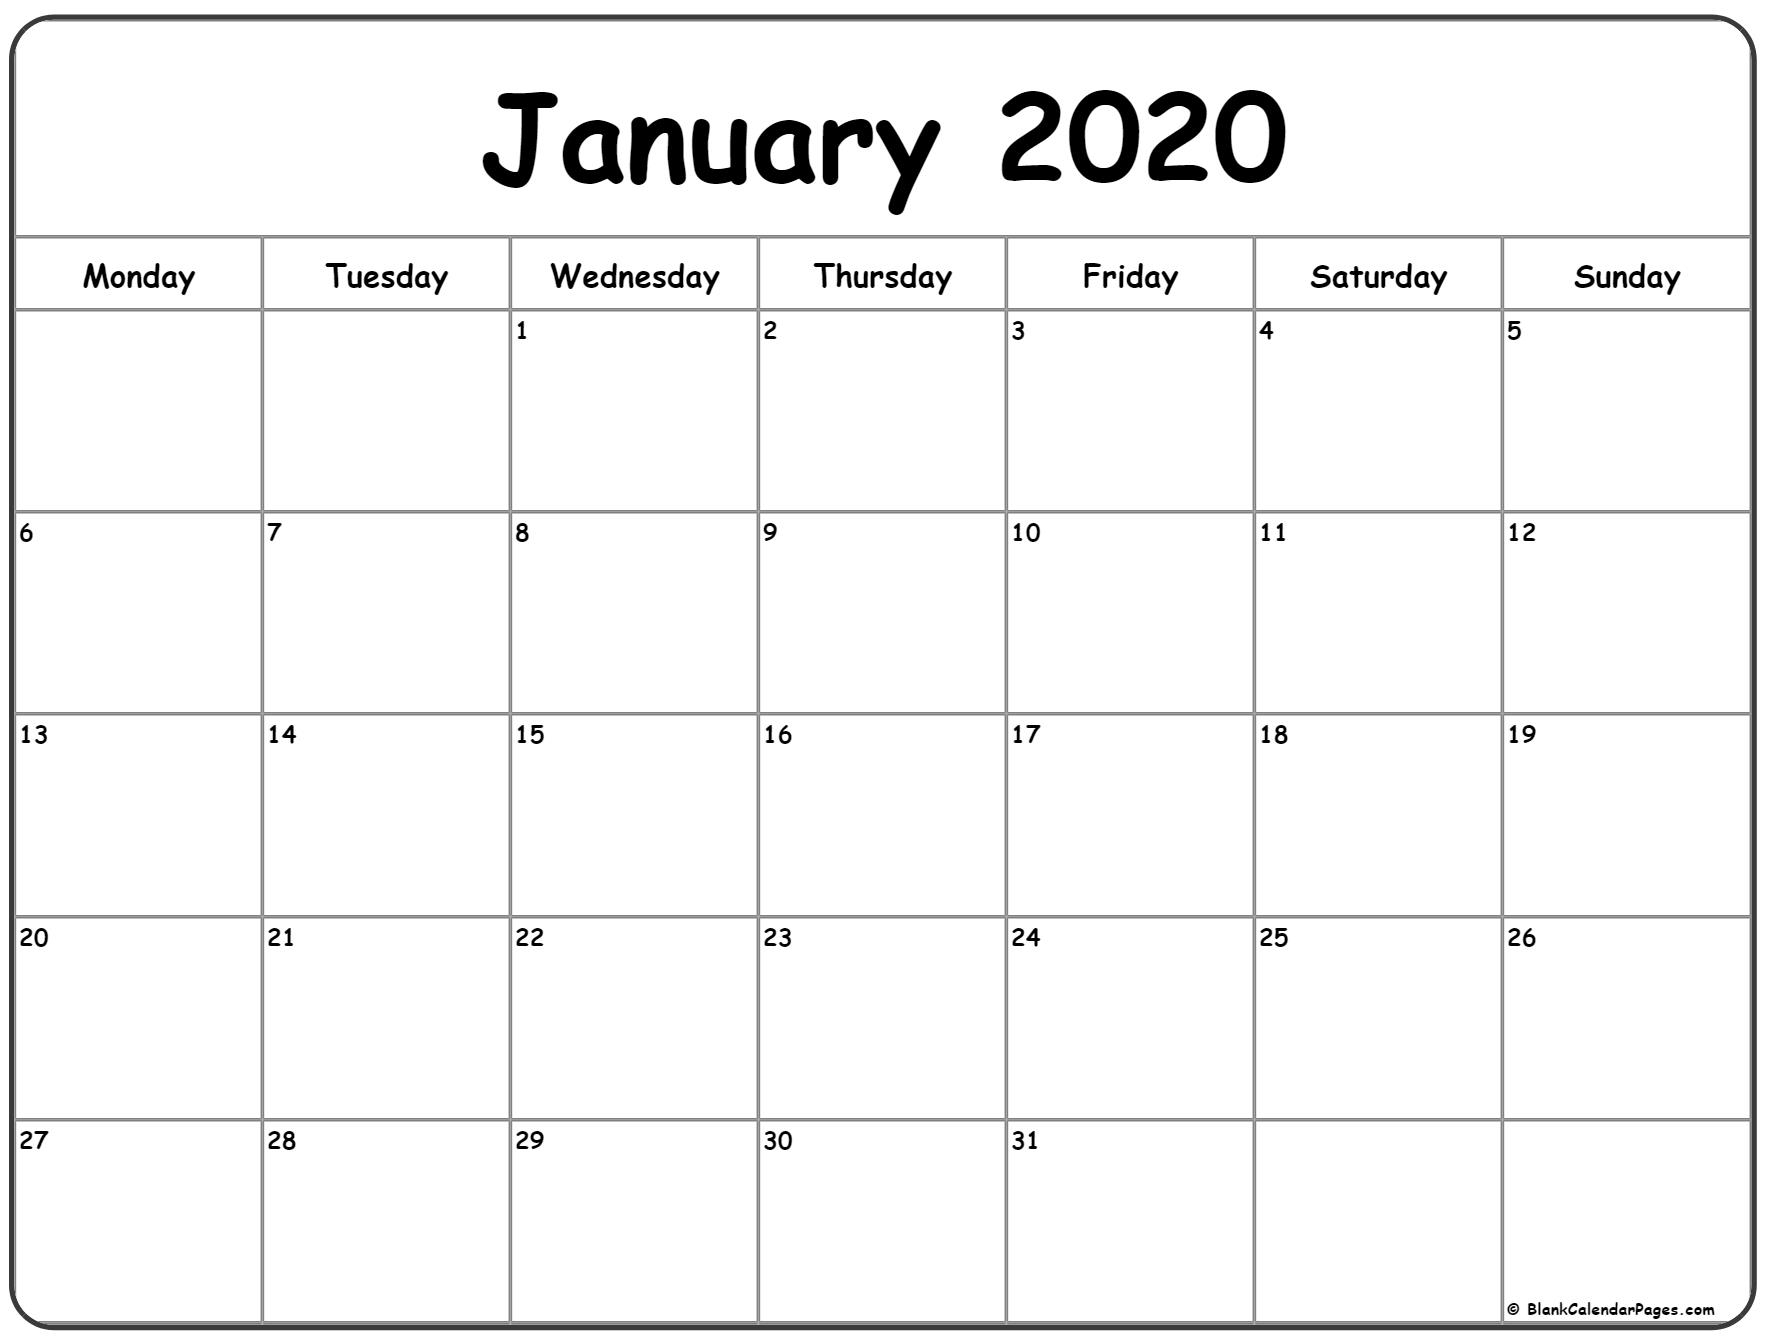 Weekly Planner January 2020